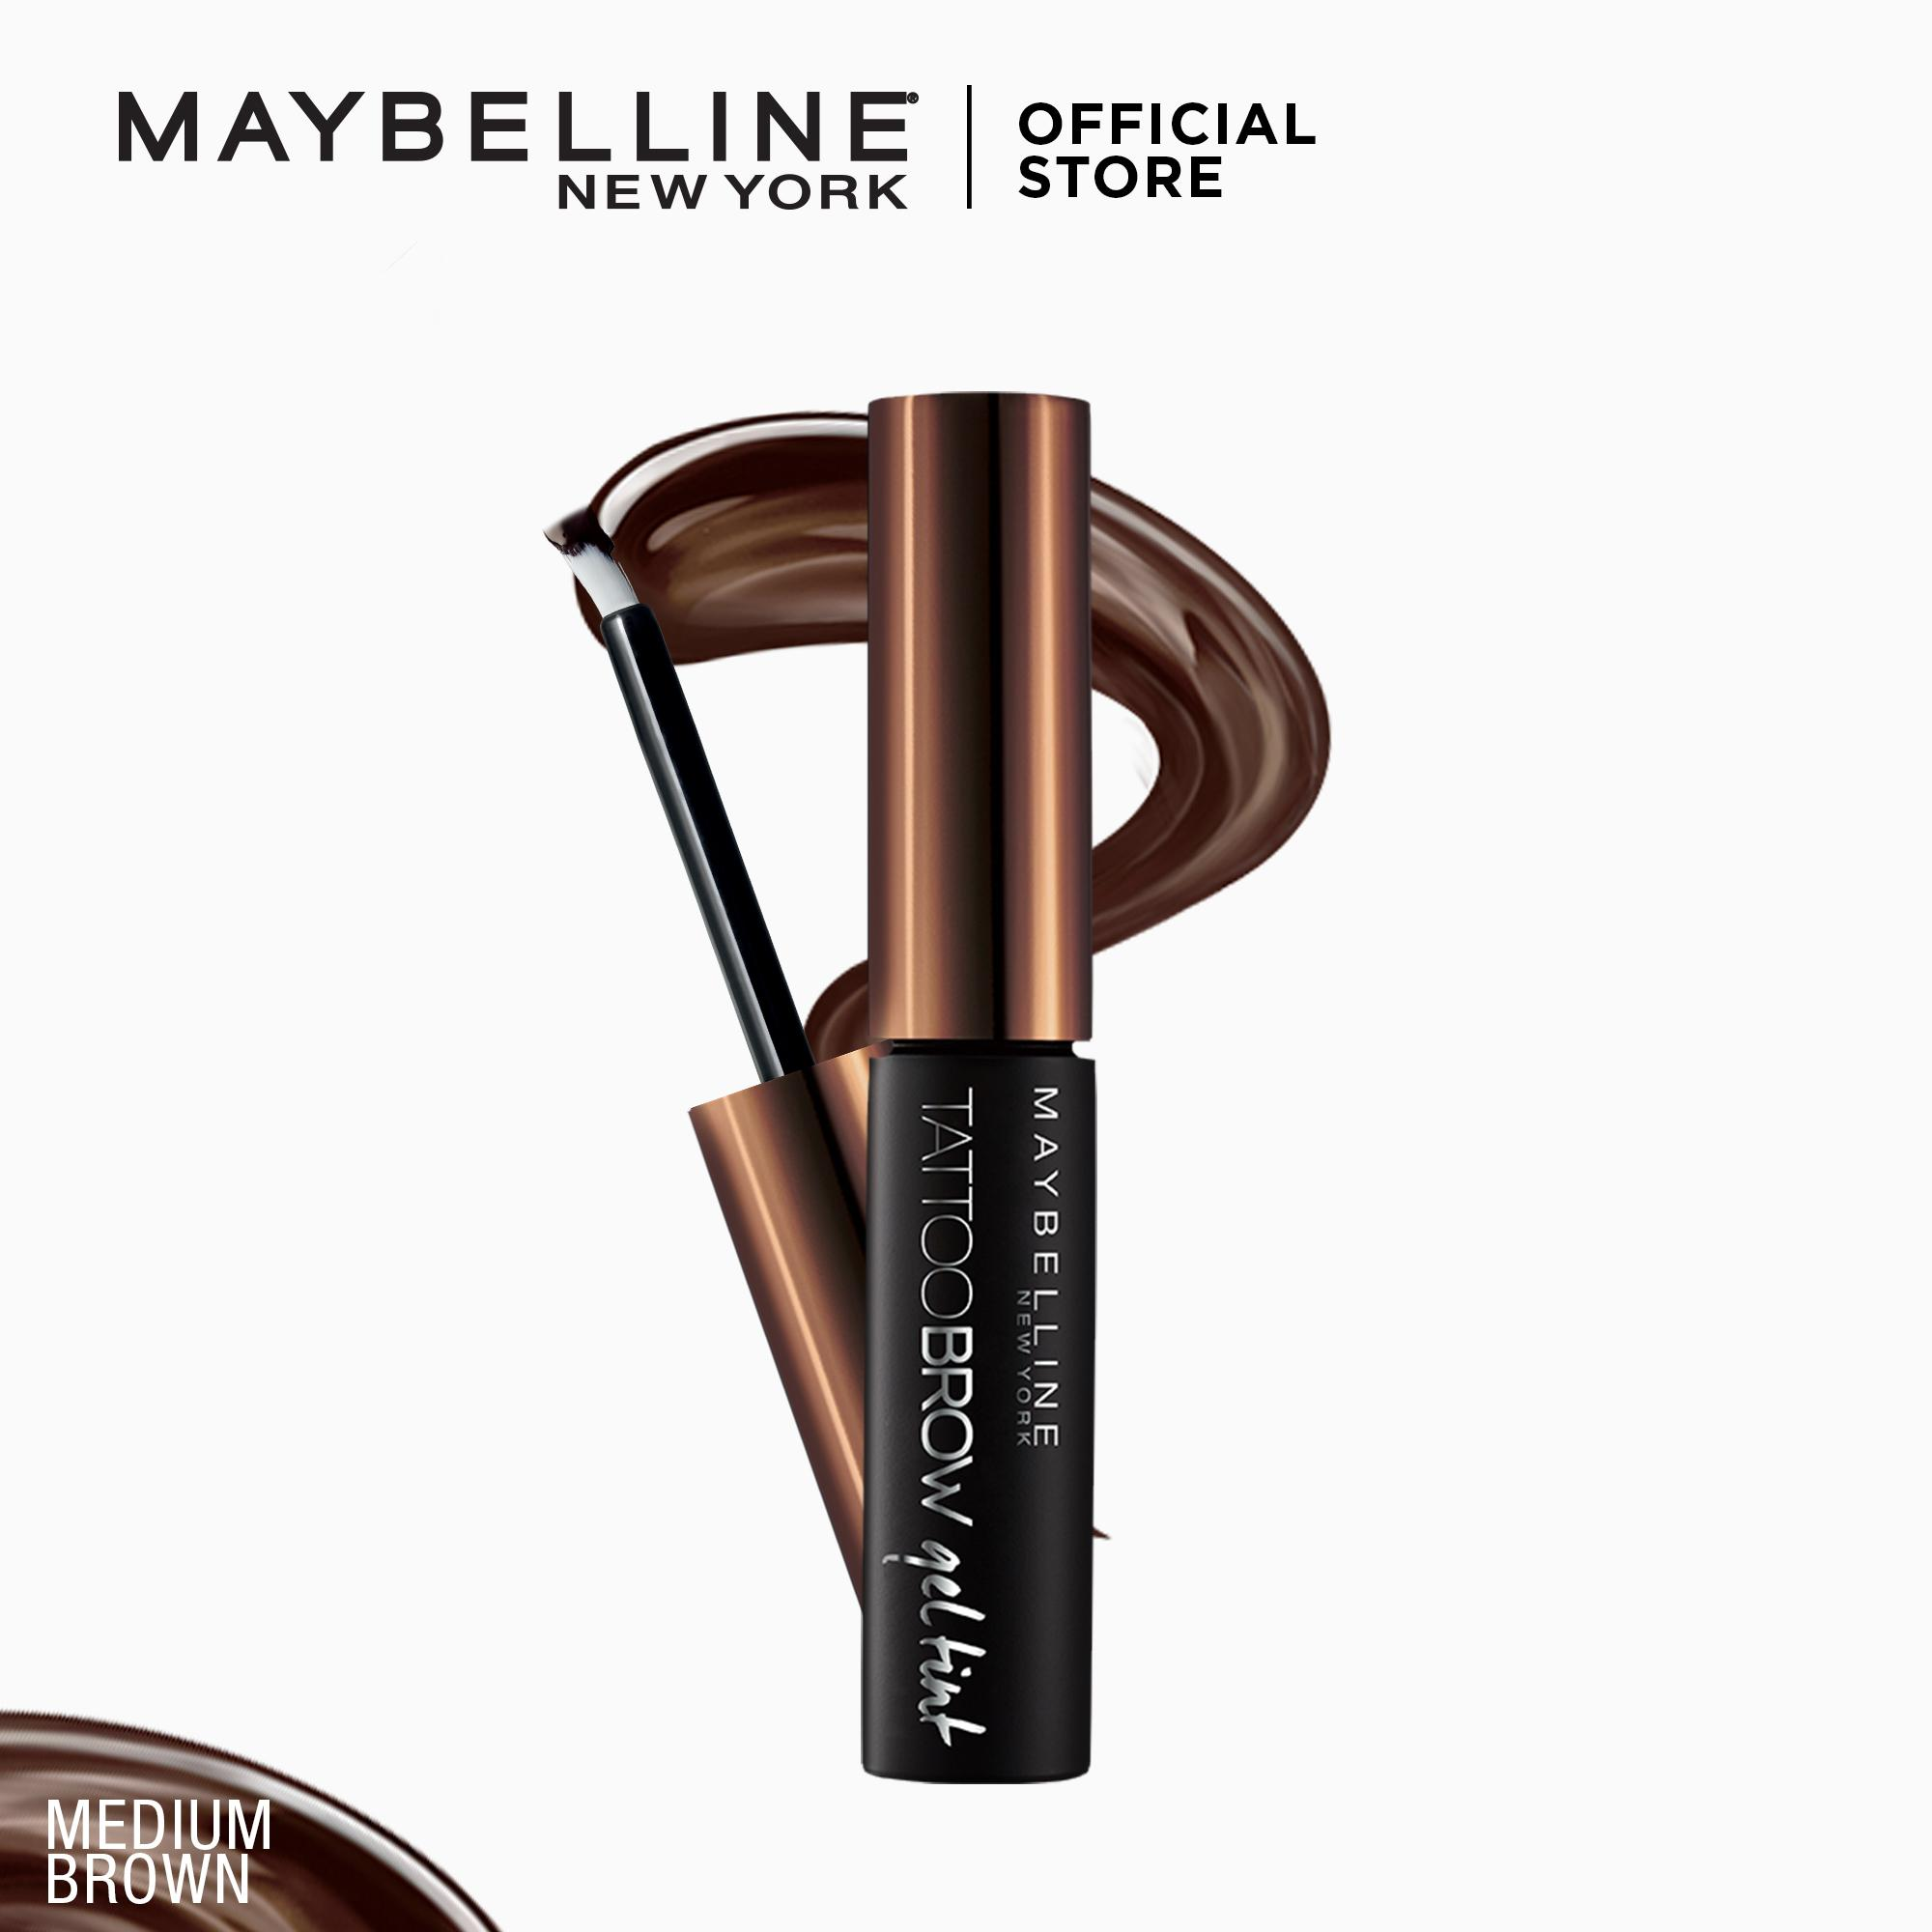 Maybelline Philippines Maybelline Eyebrow Pencil For Sale Prices